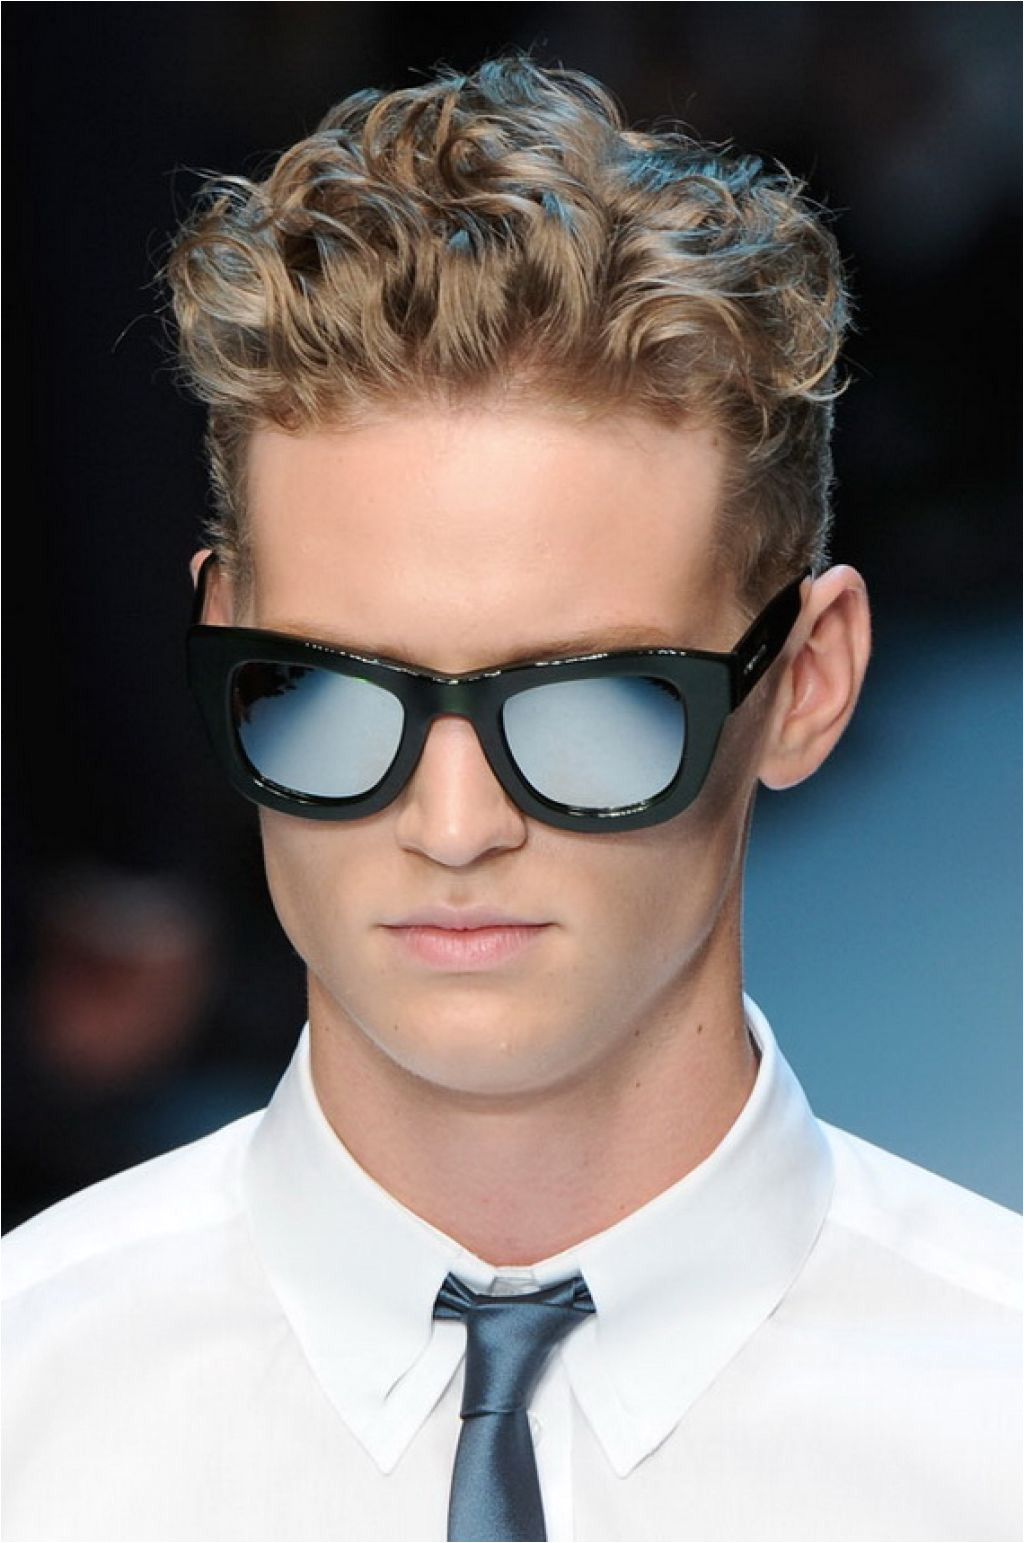 Hairstyles for Thick Curly Hair Guys Men Hairstyles Thick Curly Hair with Glass